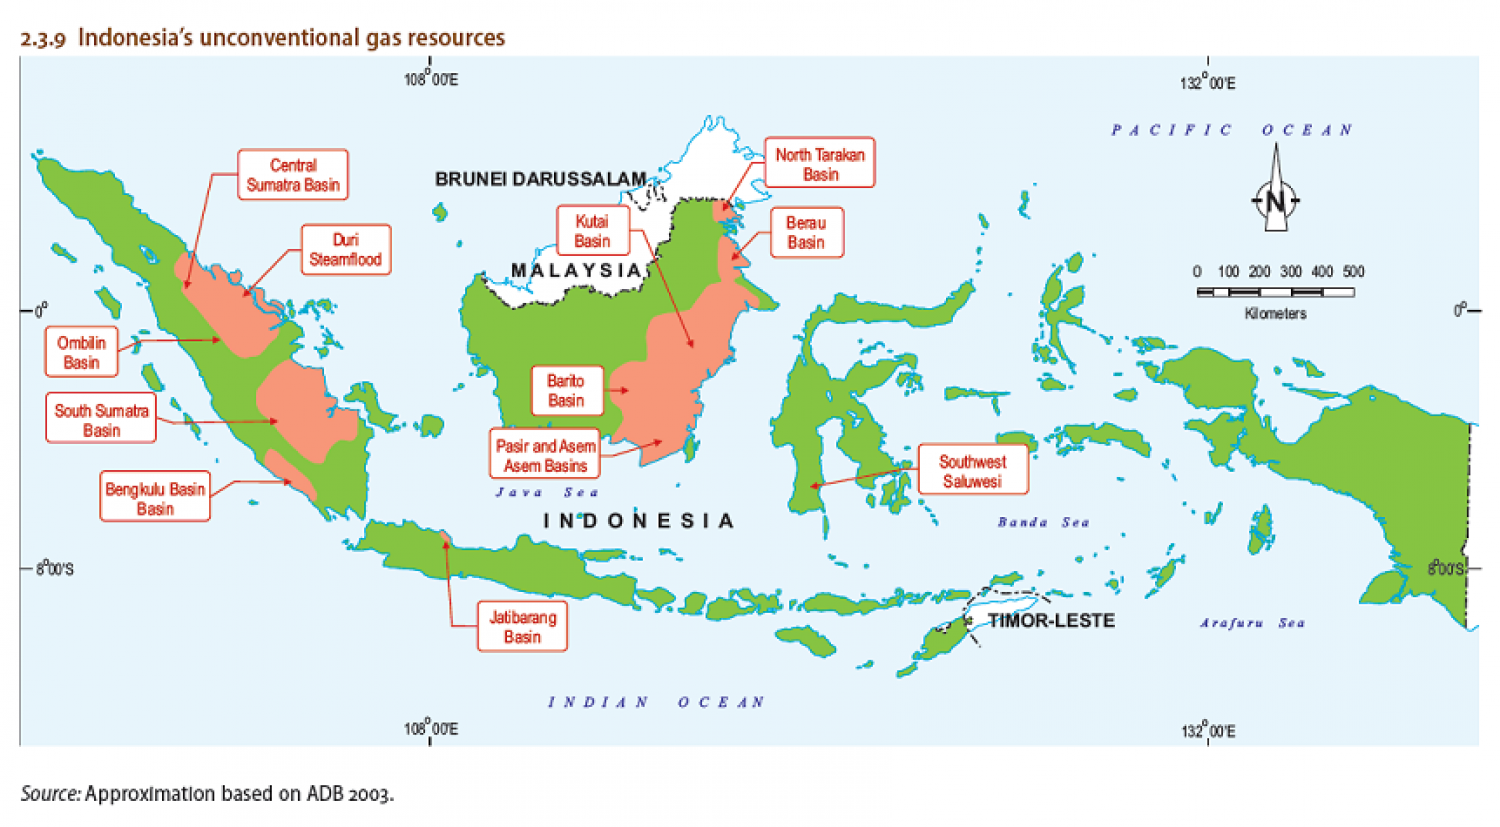 Indonesia's unconventional gas resources Infographic